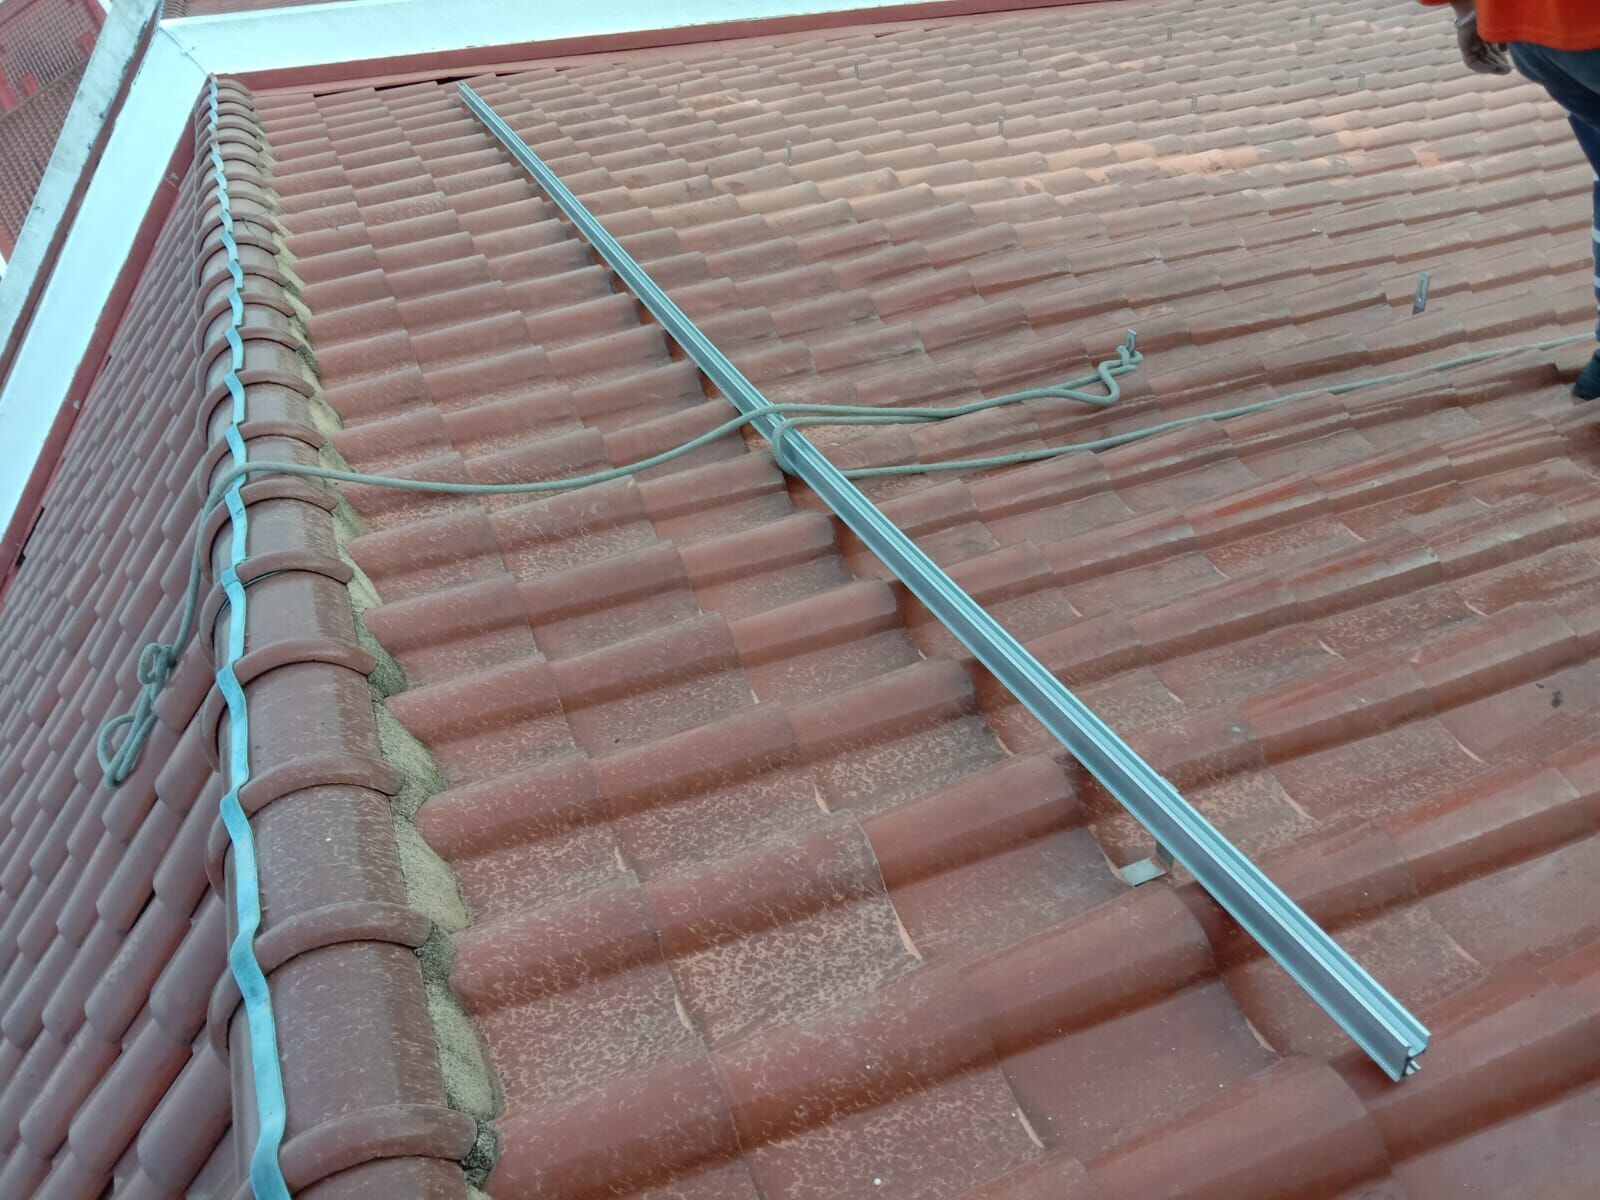 Tile Roof Solar Hook Installation In Singapore In August ,2020